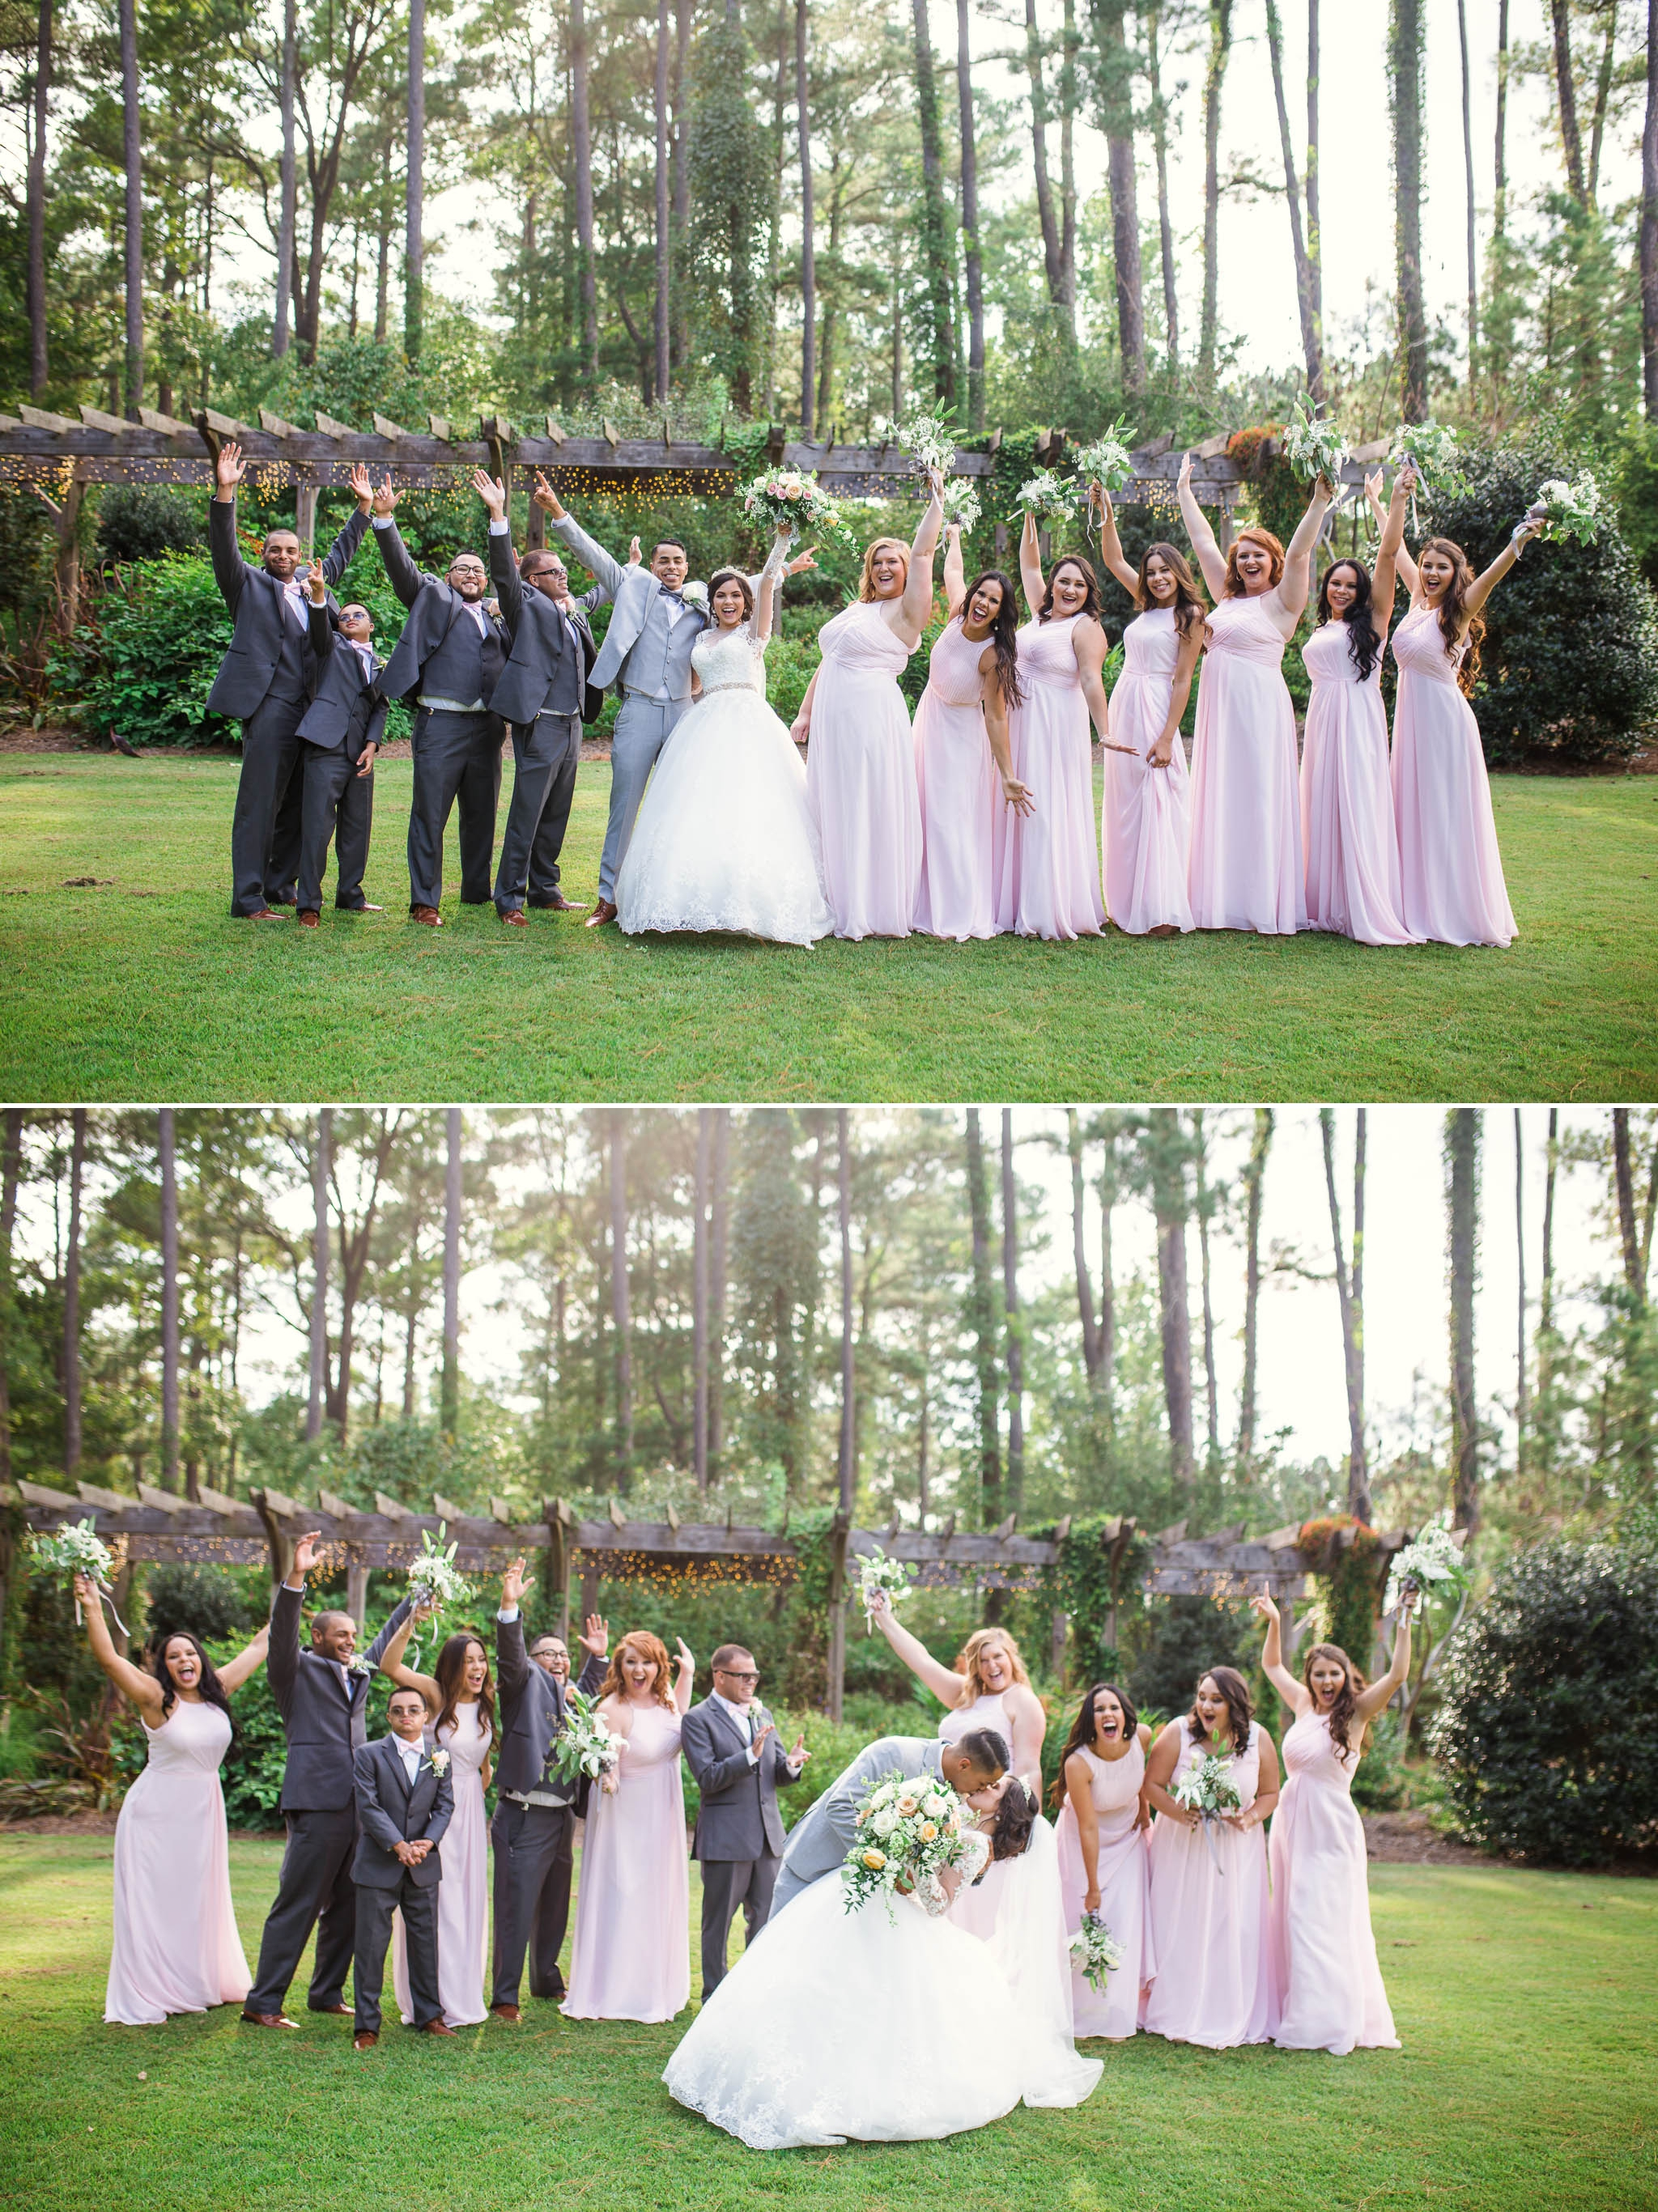 Wedding Party Portraits - Yansi + Eddie - Wedding at Cape Fear Botanical Garden - Fayetteville North Carolina Photographer